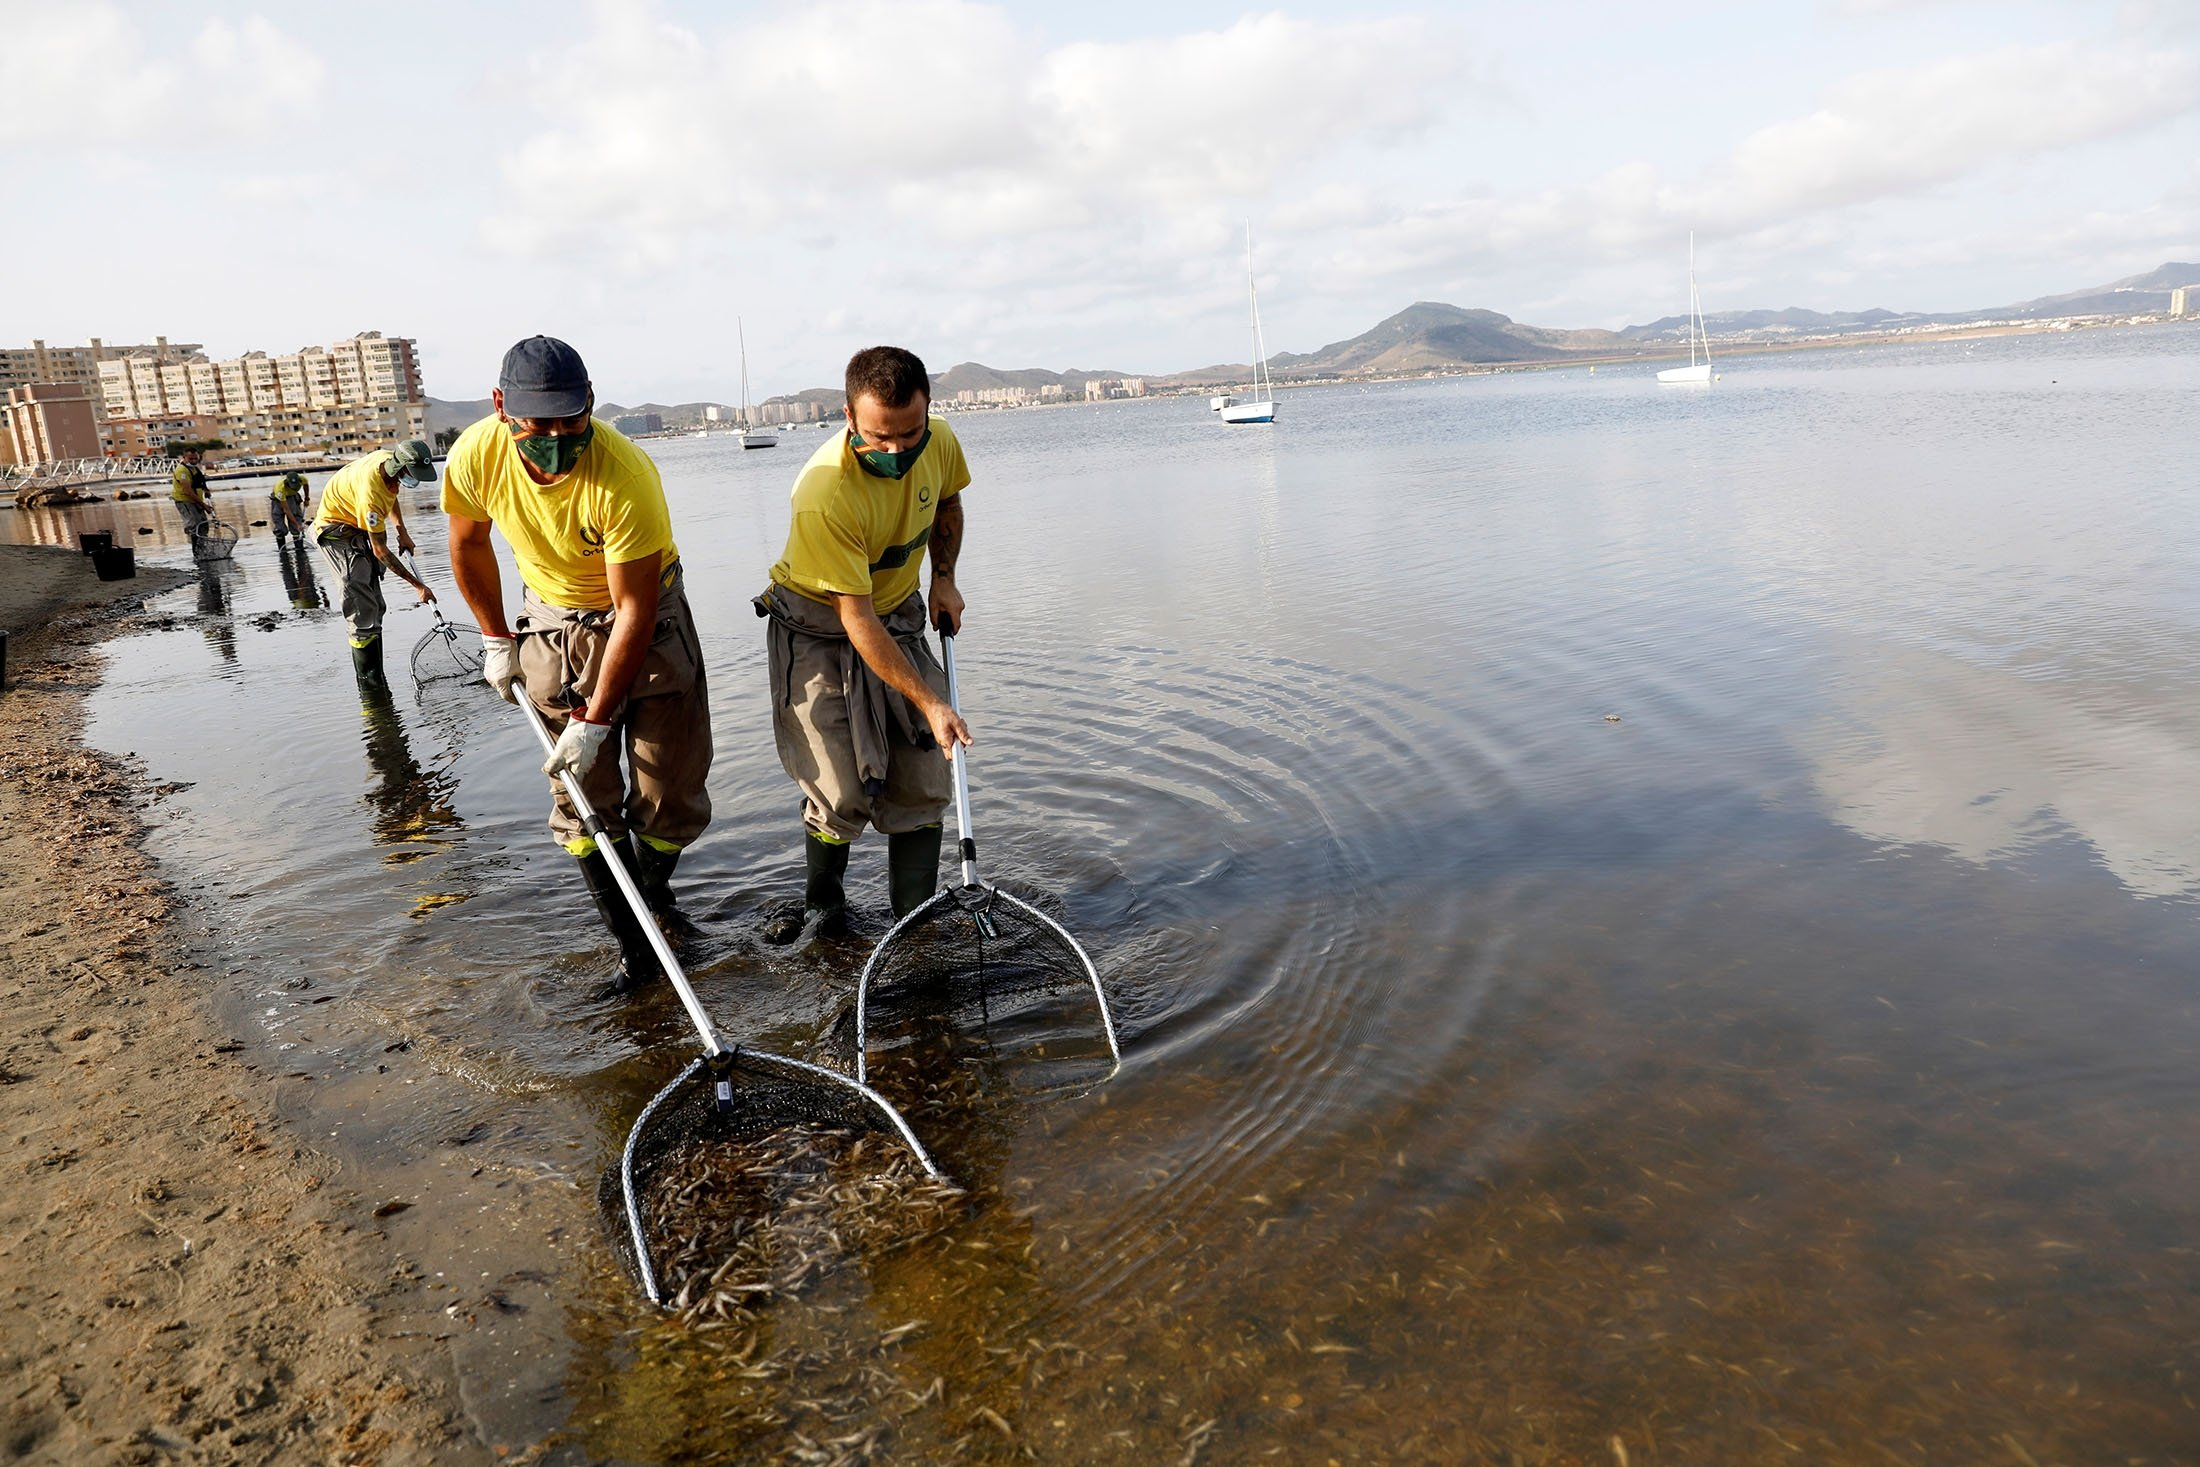 Municipal workers try to clean the beach of dead fish that continue to appear for the fourth day in La Manga del Mar Menor, Murcia, Spain, Aug. 21, 2021. (Reuters Photo)